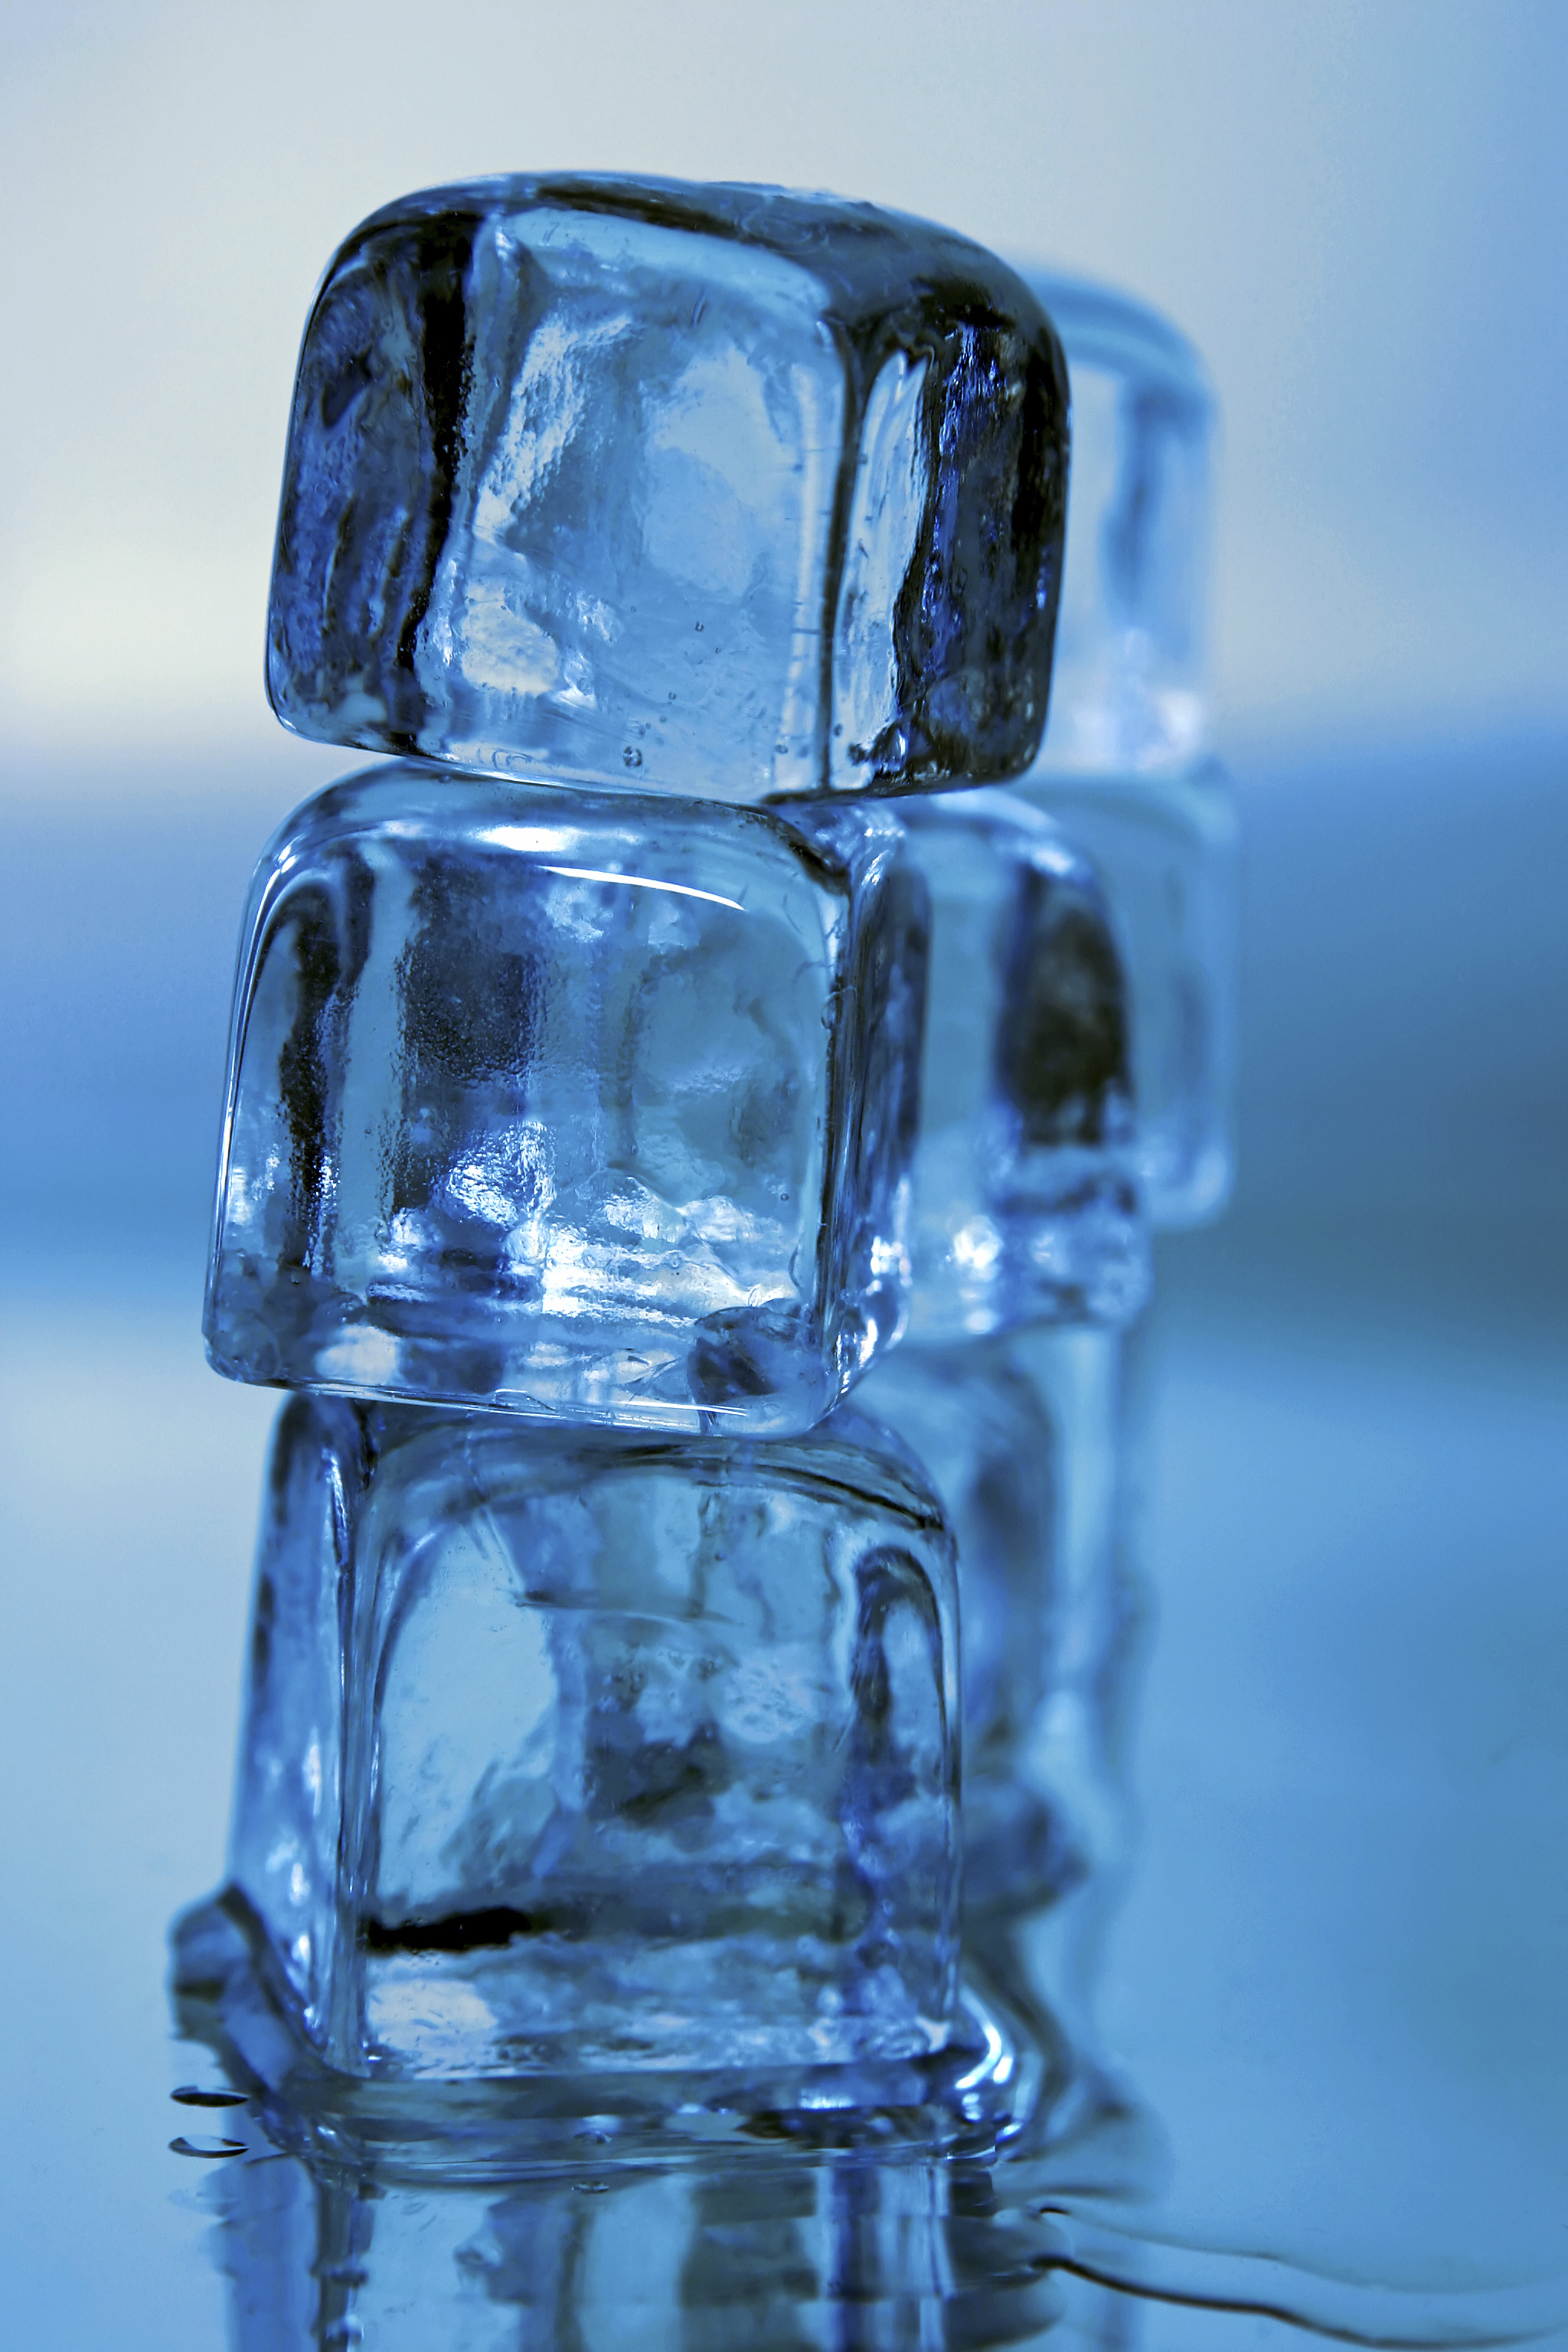 Blogs of ICE, part of theICEway ecosystem